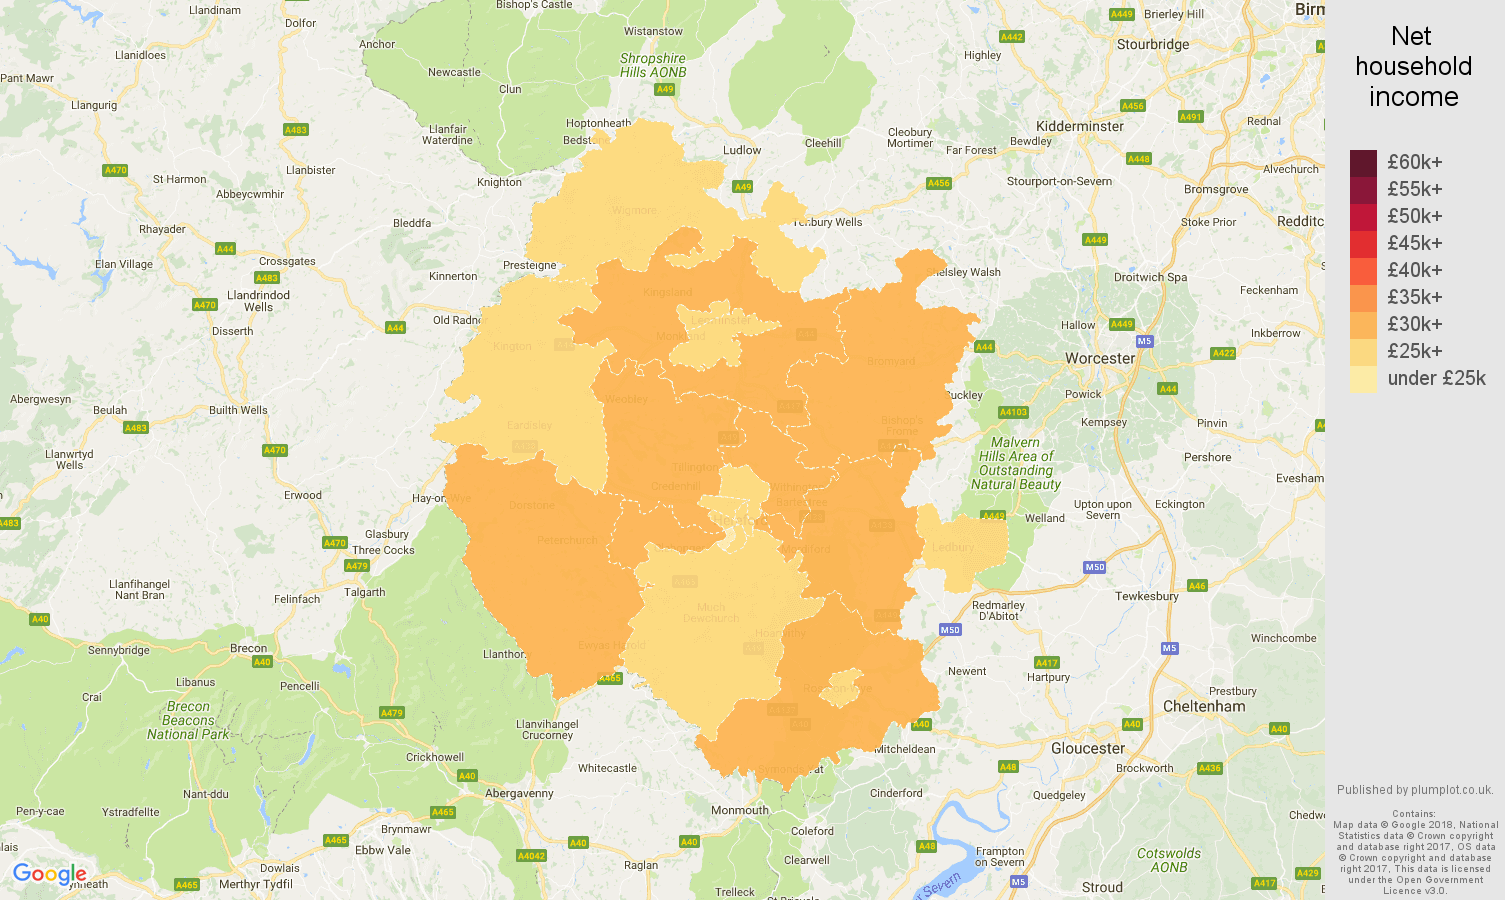 Hereford net household income map